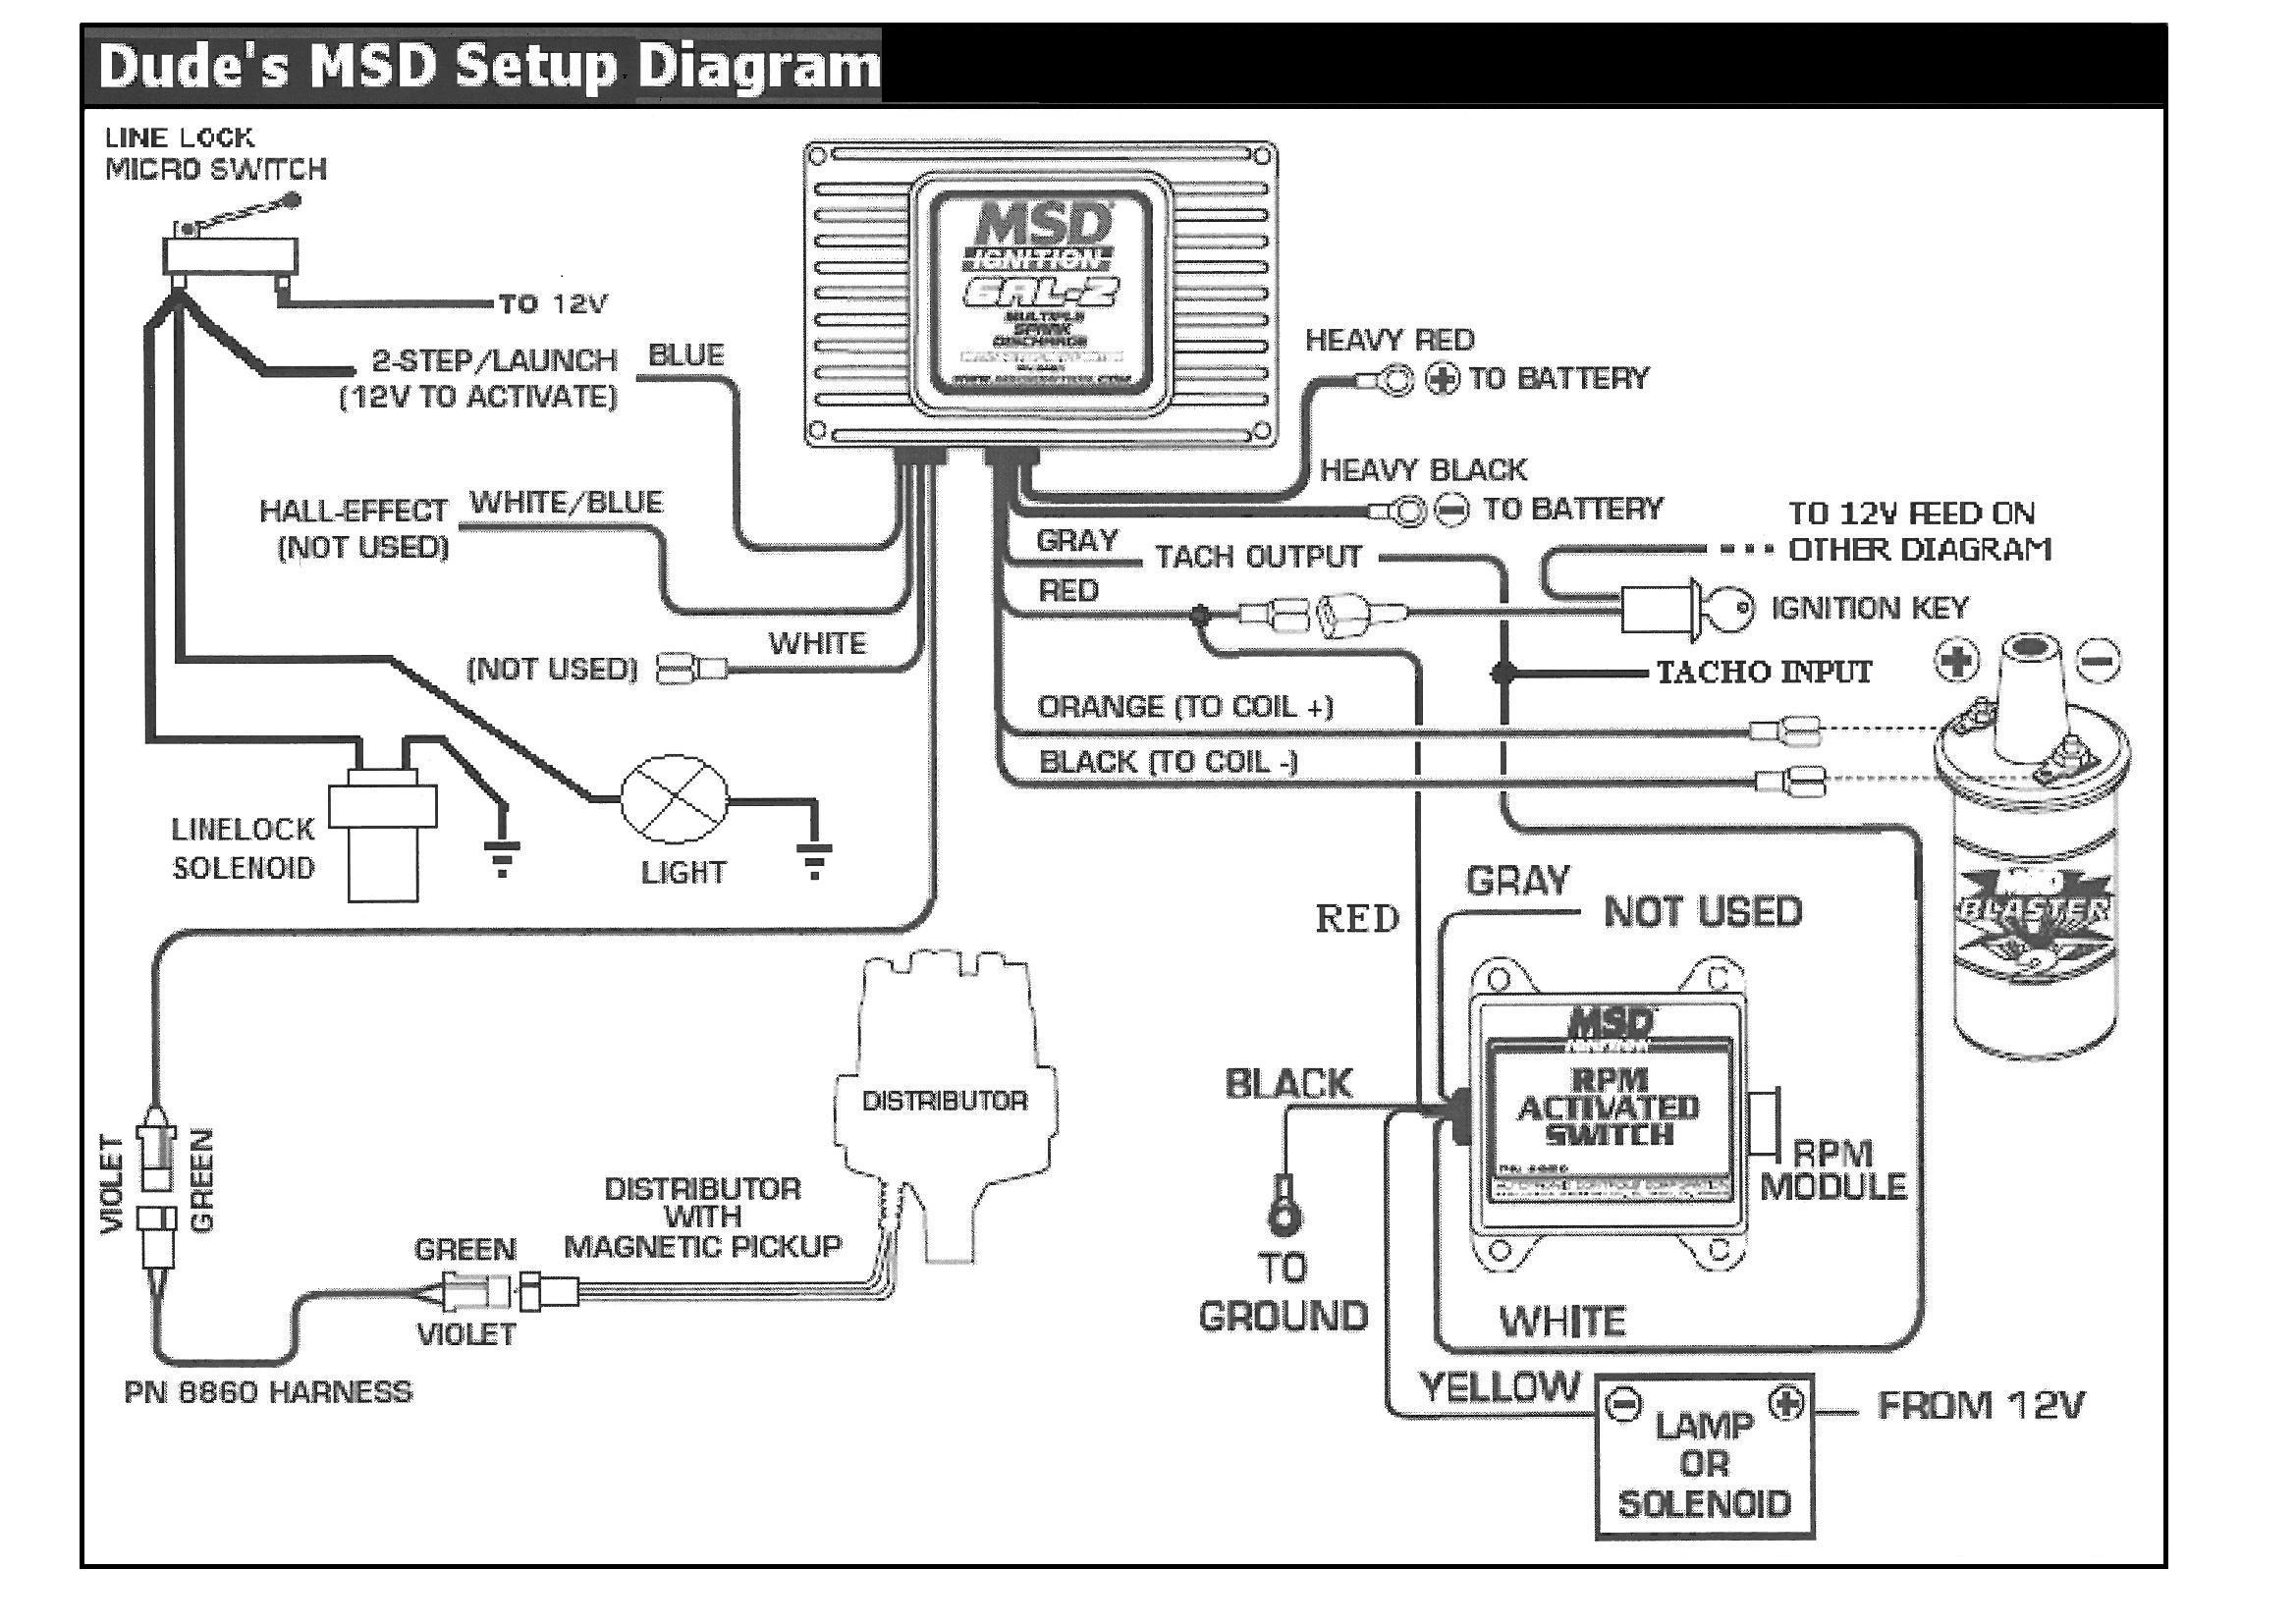 WRG-3991] Hall Effect Distributor Wiring Diagram on distributor rotor diagram, 1997 honda civic distributor diagram, 4g63 timing belt diagram, stator diagram, international fuse panel diagram, obd1 connector diagram, honda ecu pinout diagram, ignition diagram, obd ii pinout diagram, reverse osmosis water filter system diagram, how does a magneto work diagram, fuel gauge diagram, 95 accord fuse box diagram, jeep cherokee spark plug diagram, distributor engine diagram, hei distributor diagram, distributor cap, wheels diagram, distributor exploded view, distributor parts diagram,